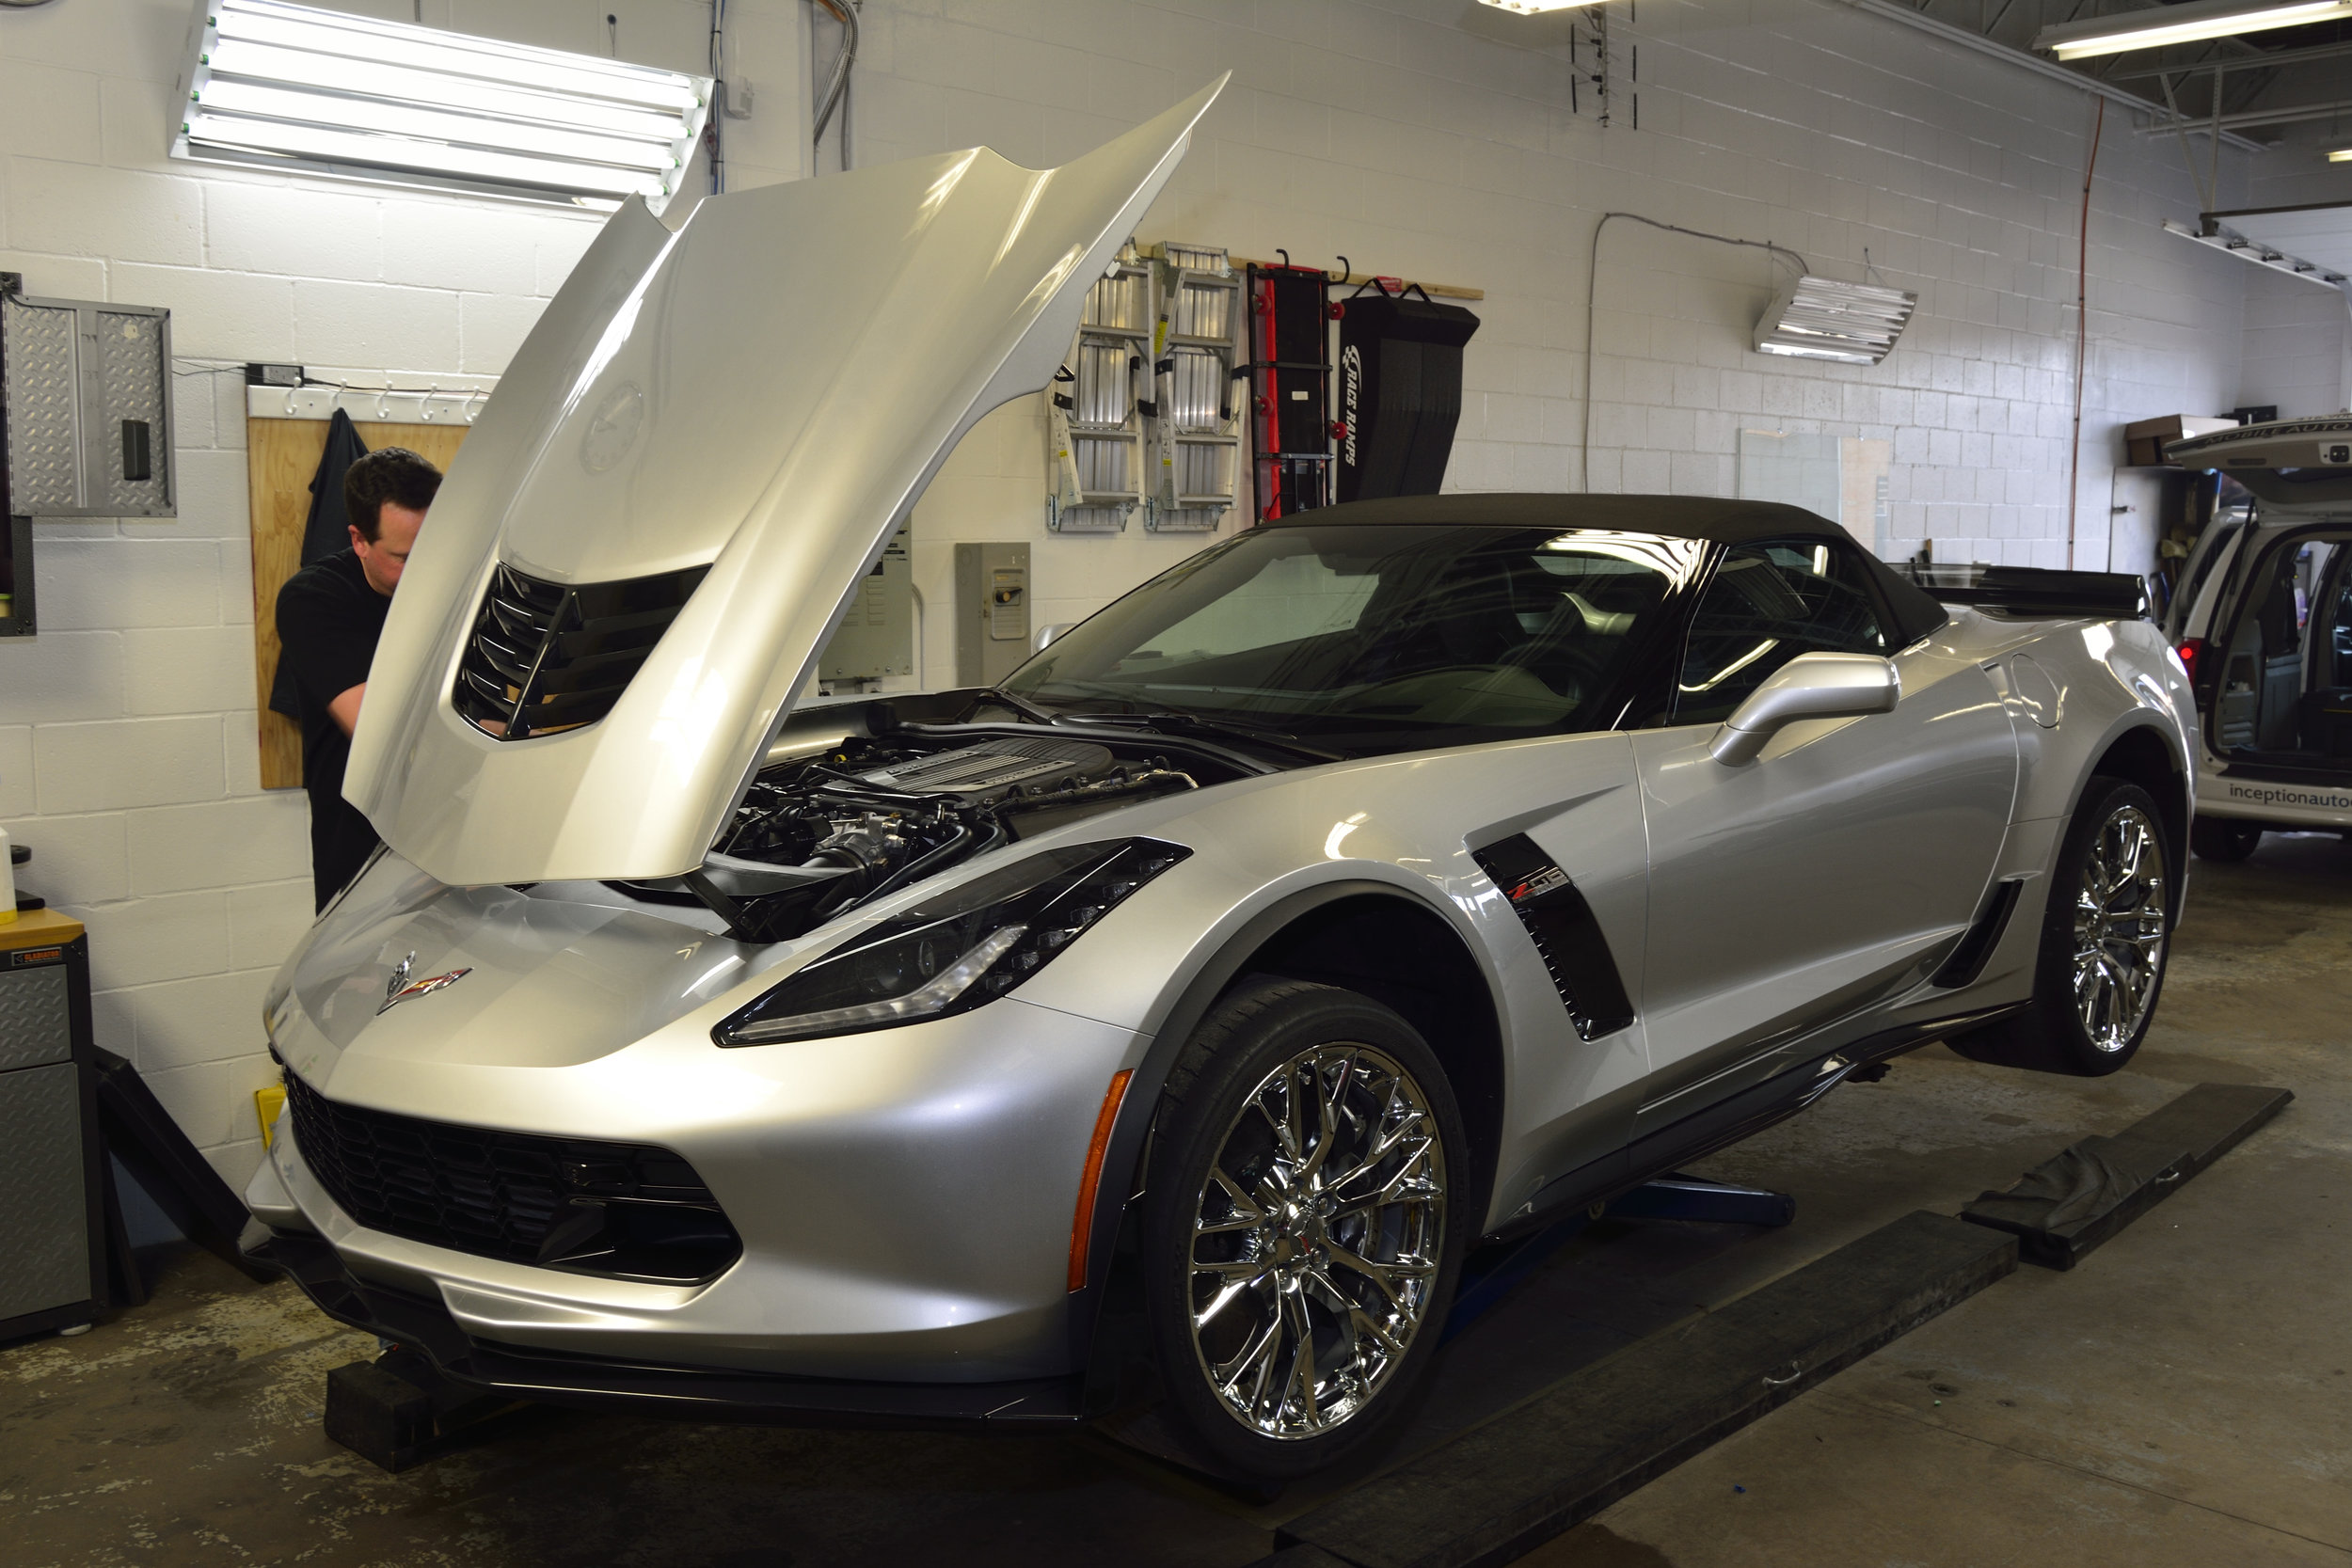 Chevrolet C7 Corvette New Vehicle Prep with 22PLE Glass Coating Protection + XPEL Ultimate PPF Installation on the entire front end of the vehicle + XPEL Prime XR Window Tints